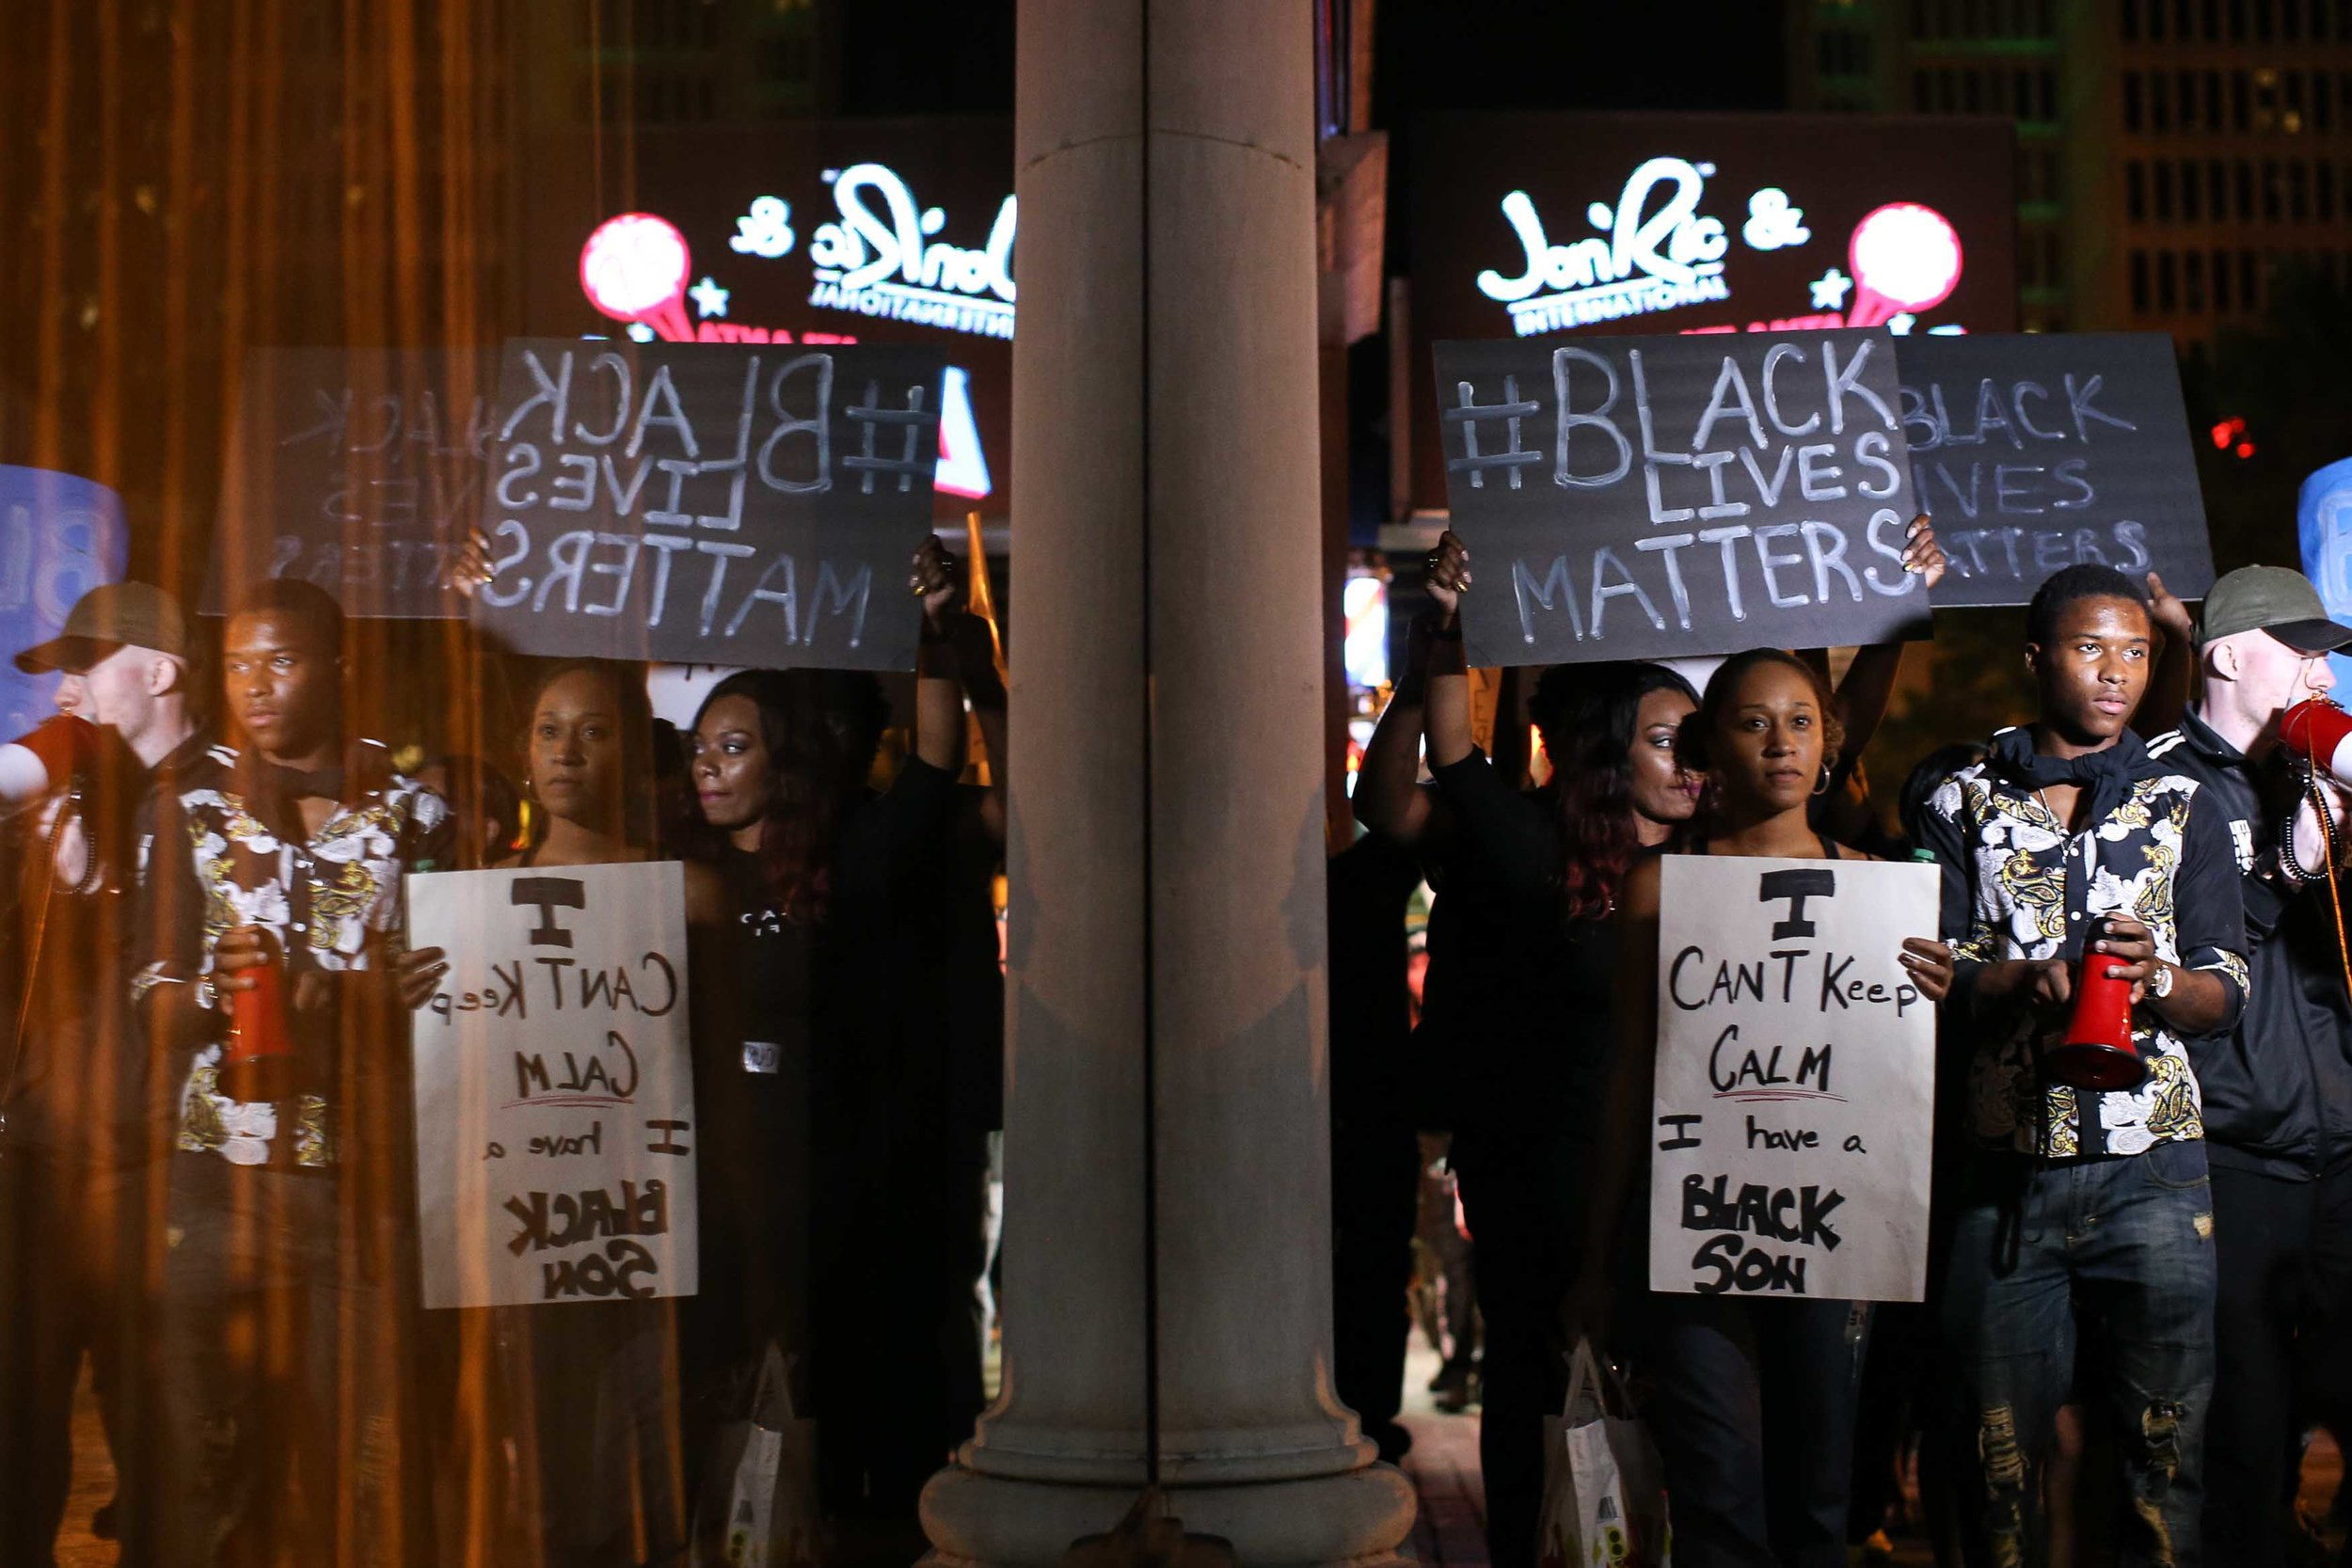 Black Lives Matter protesters march in downtown Atlanta, Saturday, Sept. 24, 2016, in response to the police shooting deaths of Terence Crutcher in Tulsa, Okla. and Keith Lamont Scott in Charlotte, N.C.  (AP Photo/Branden Camp)